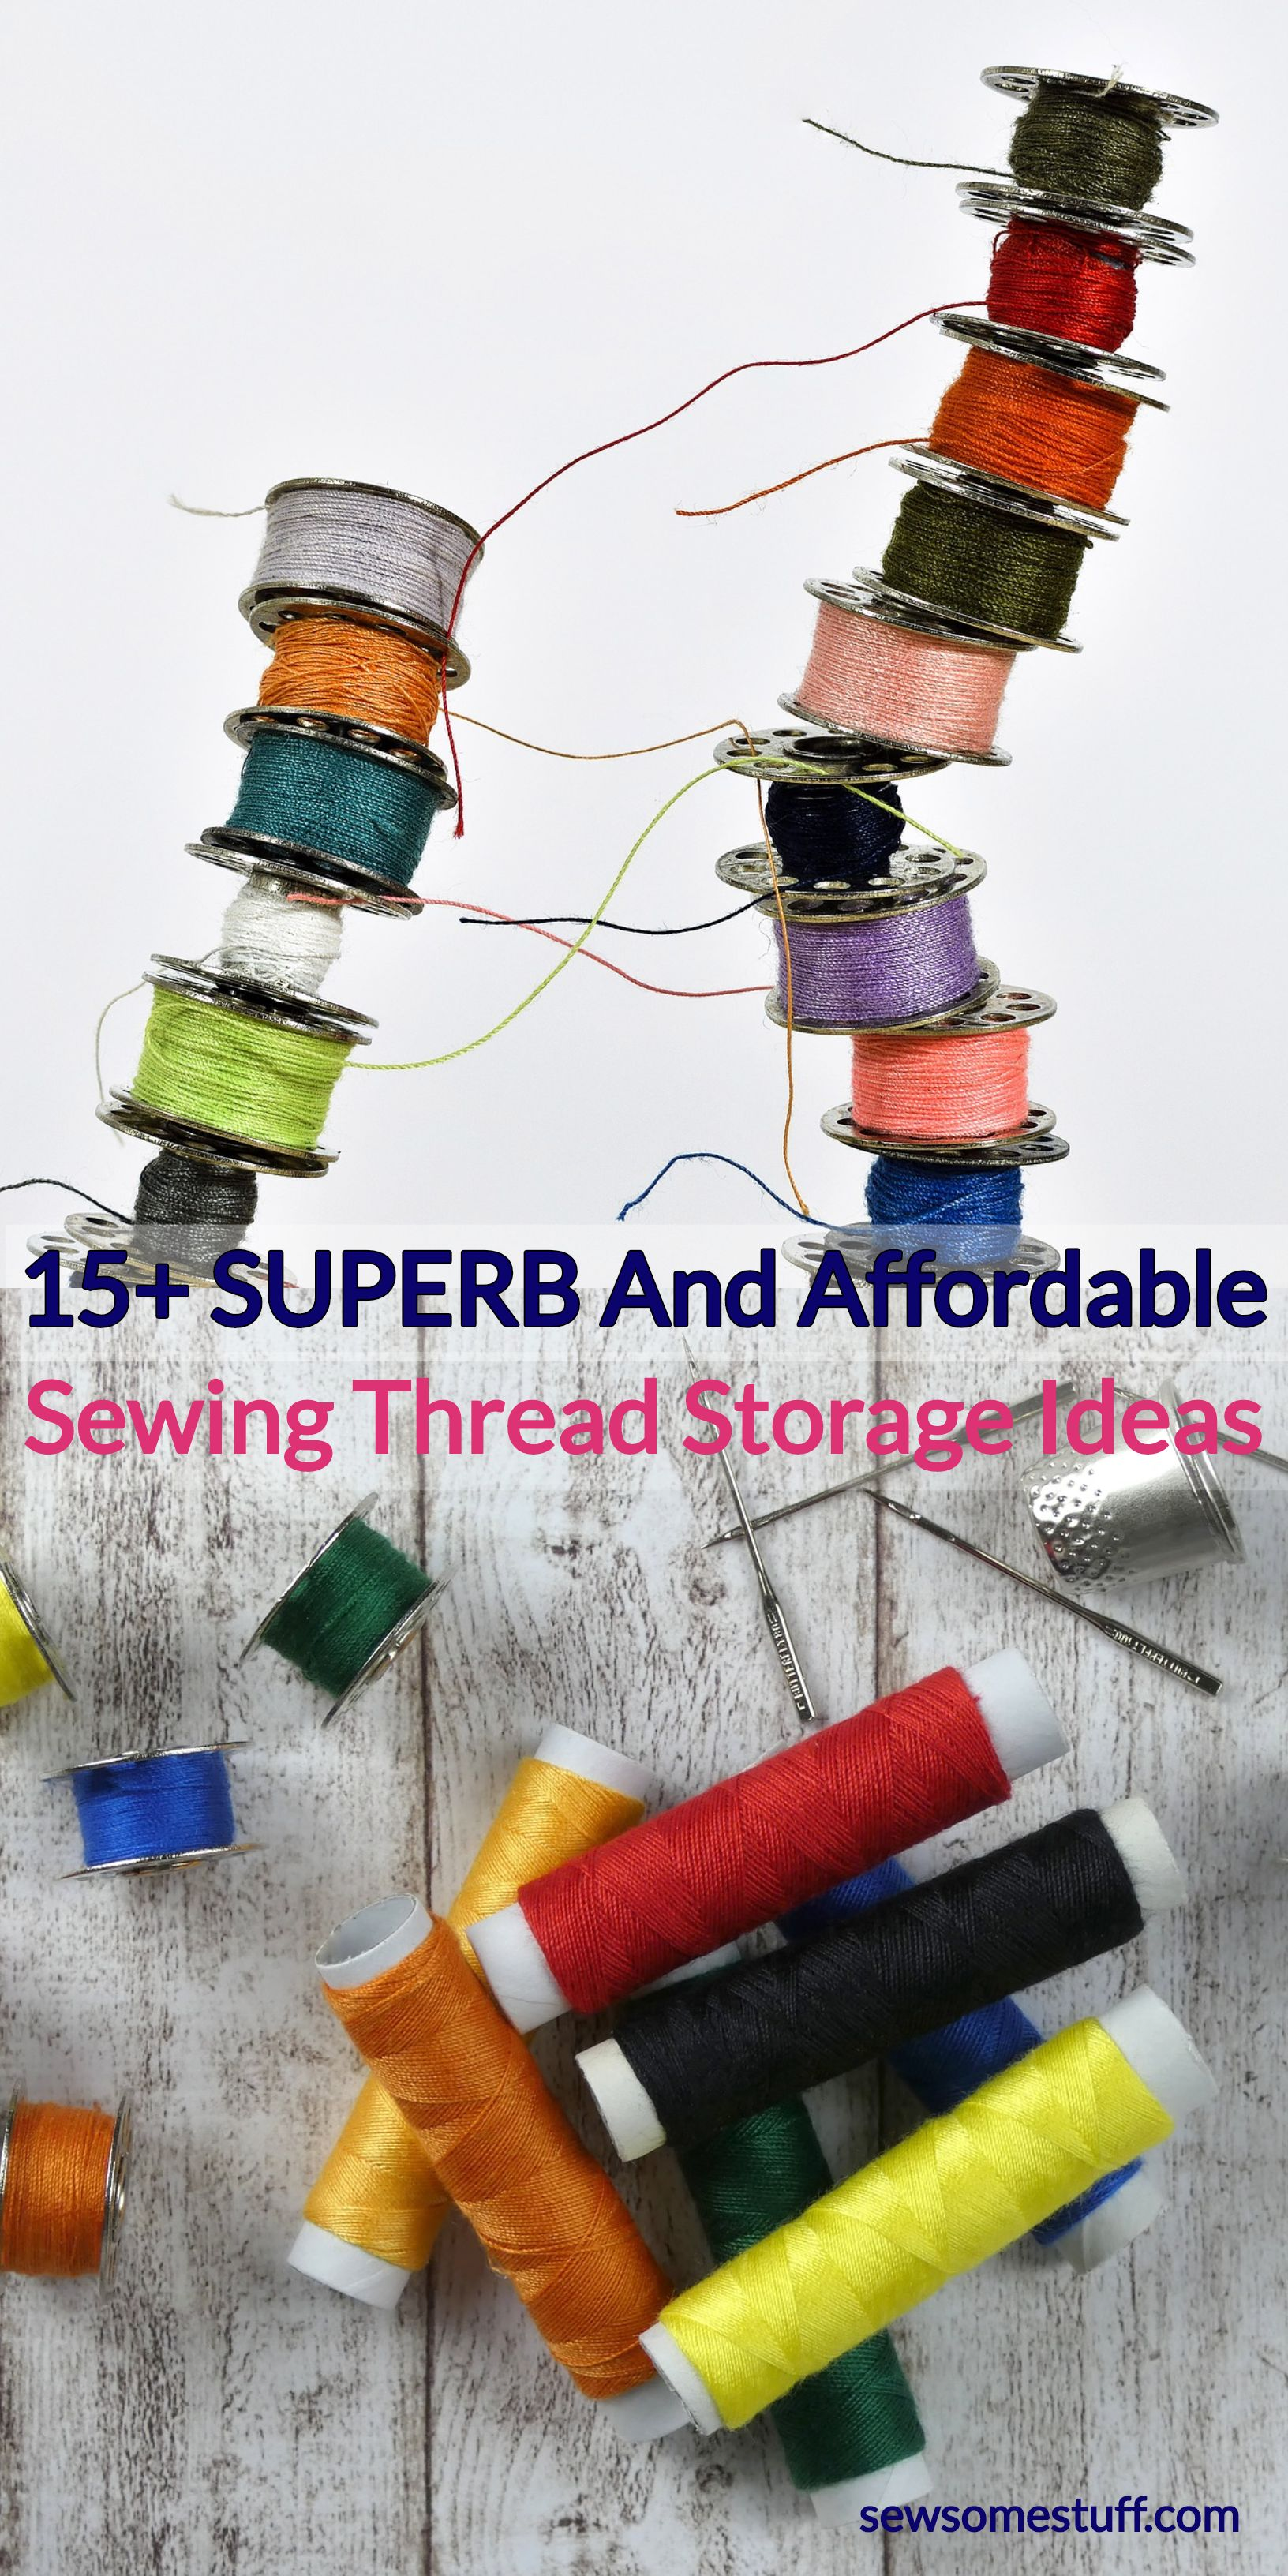 Check out these top 11 thread storage ideas for every sewing room thread storage | thread organizer | thread storage box | thread storage ideas | sewing thread organizer | thread box organizers | thread bobbin organizer